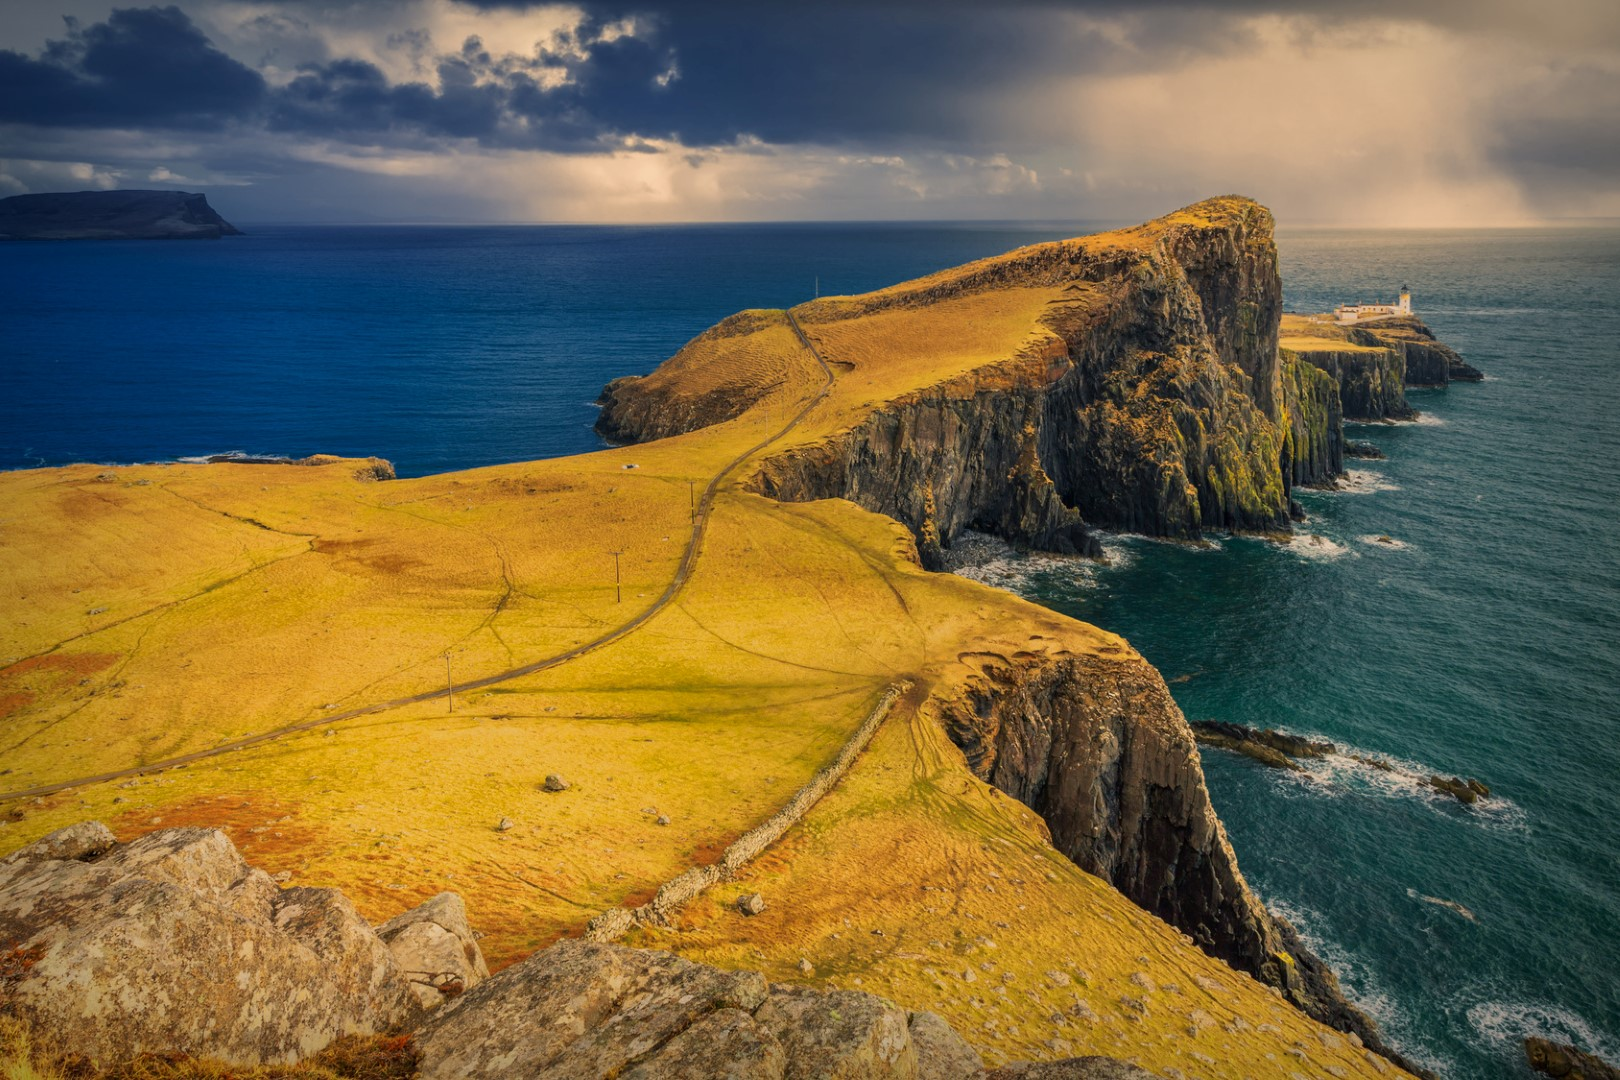 Dramatic cloudy and rainy sky over Neist Point and its lighthouse on Isle of Skye, Scotland, UK